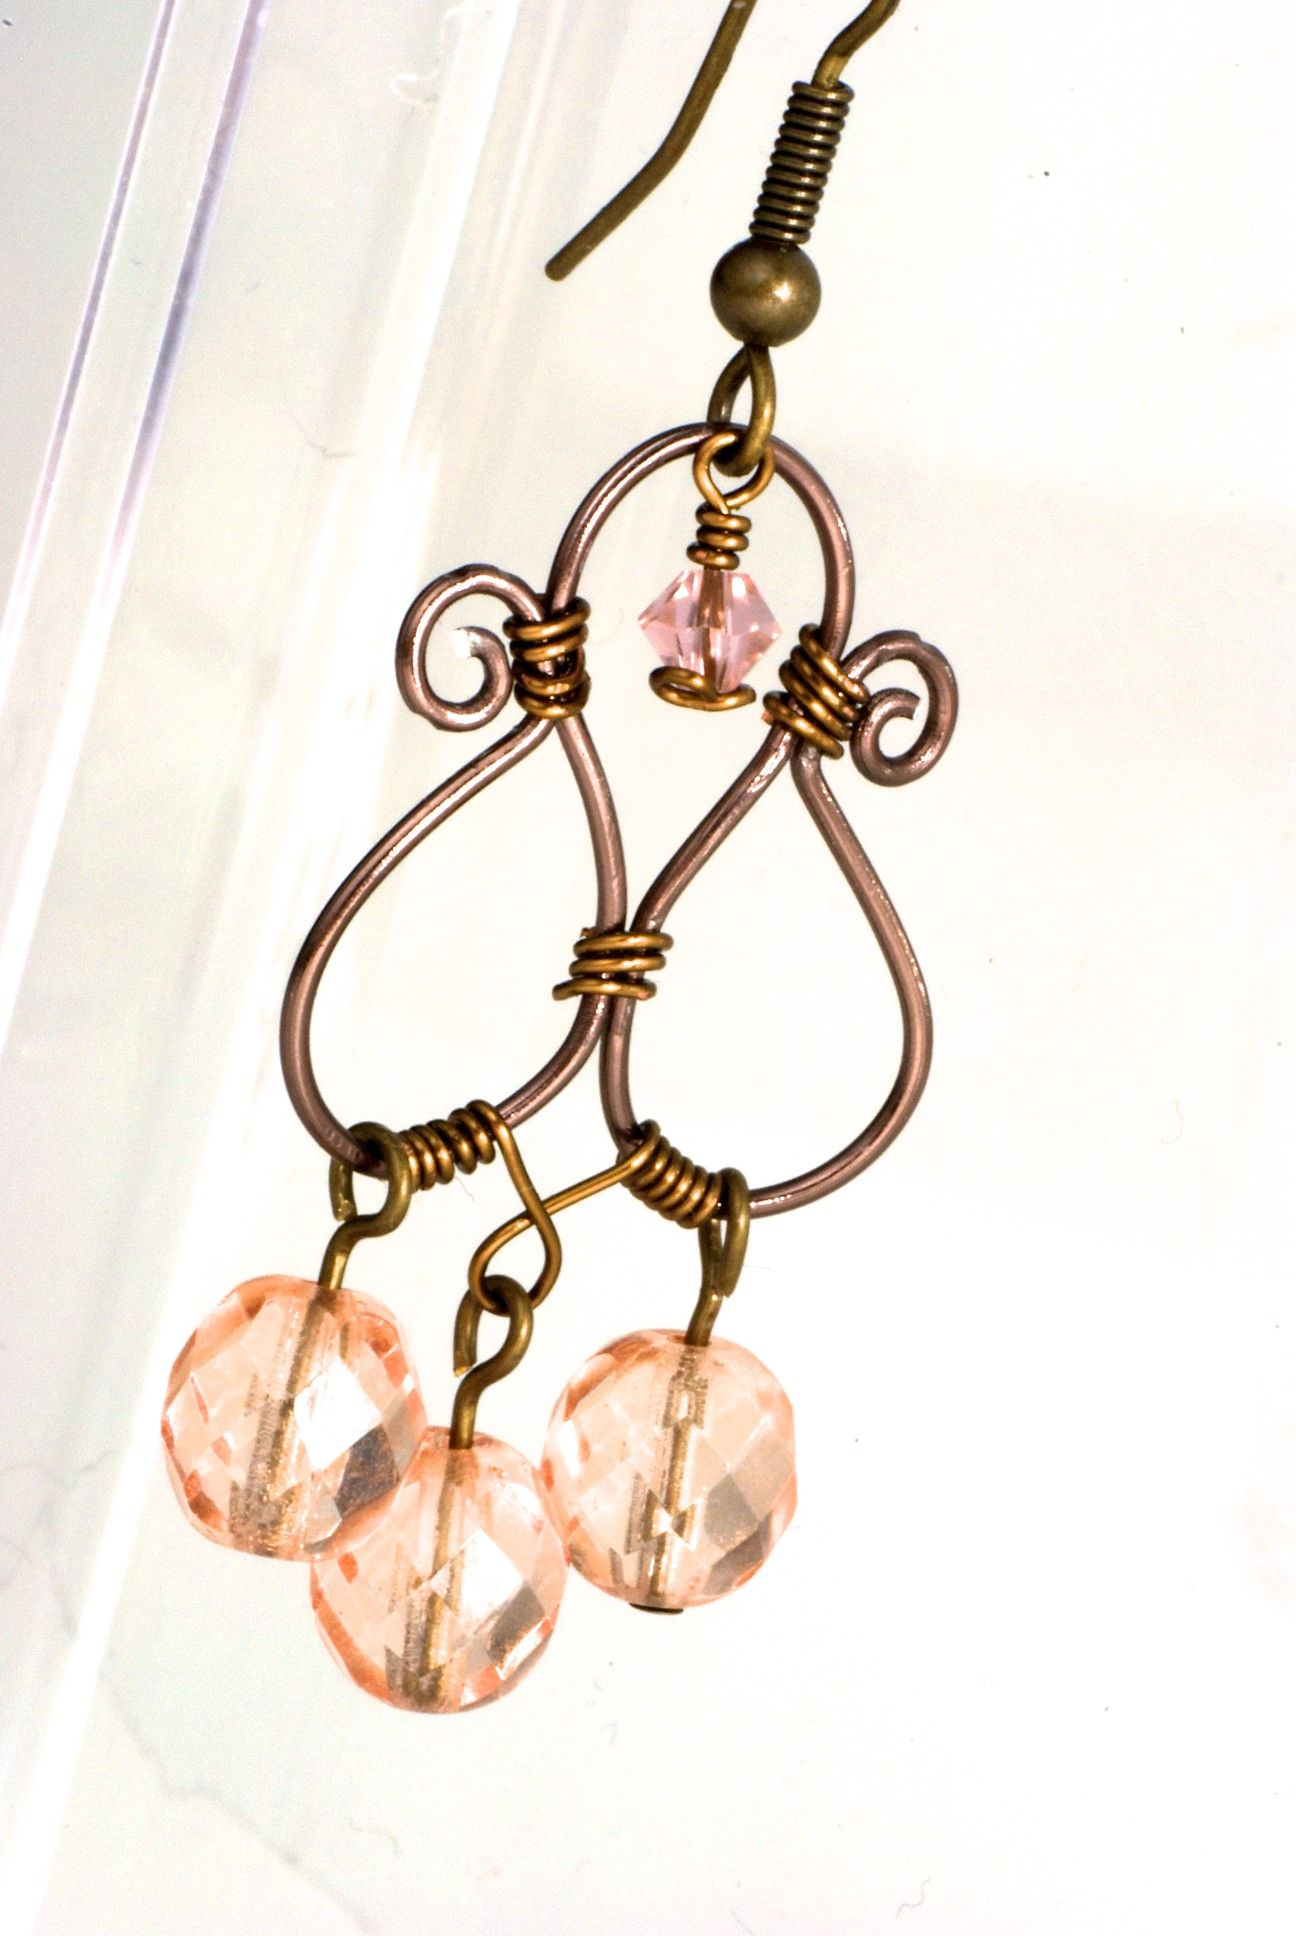 Wire Wrapped Earrings | Stuff I actually made myself | Pinterest ...